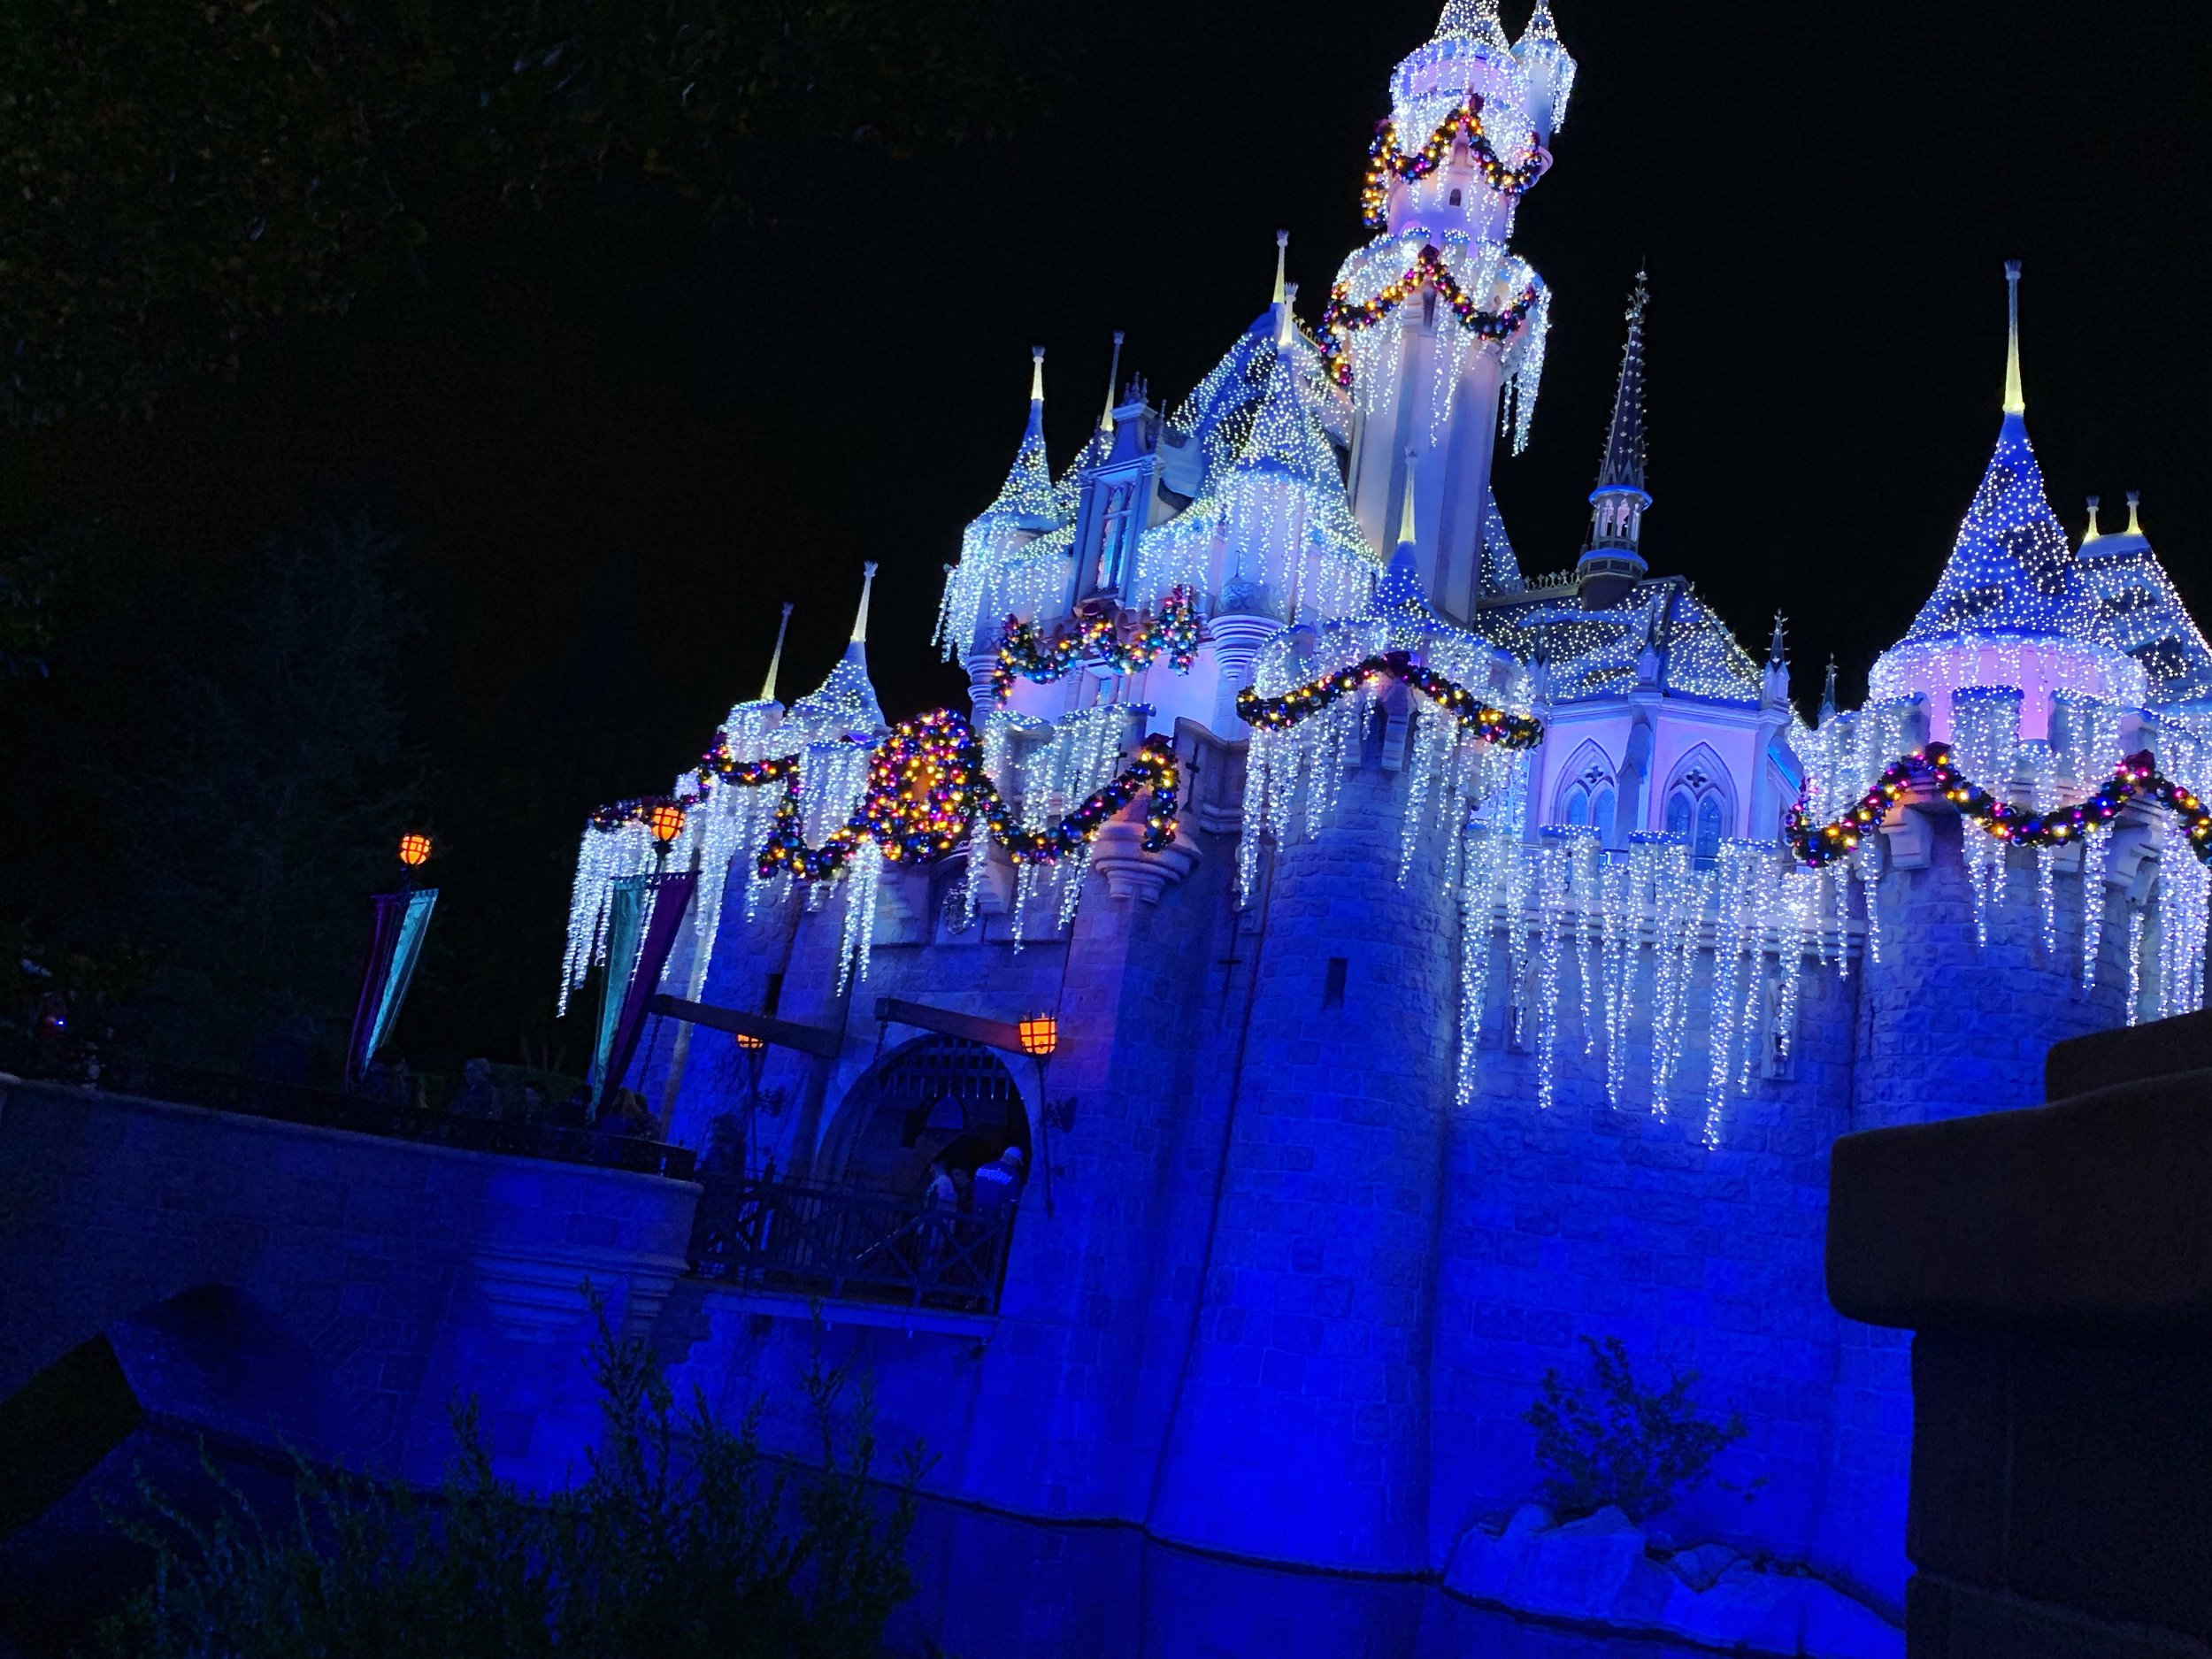 Christmas lights in Los Angeles - Disneyland castle